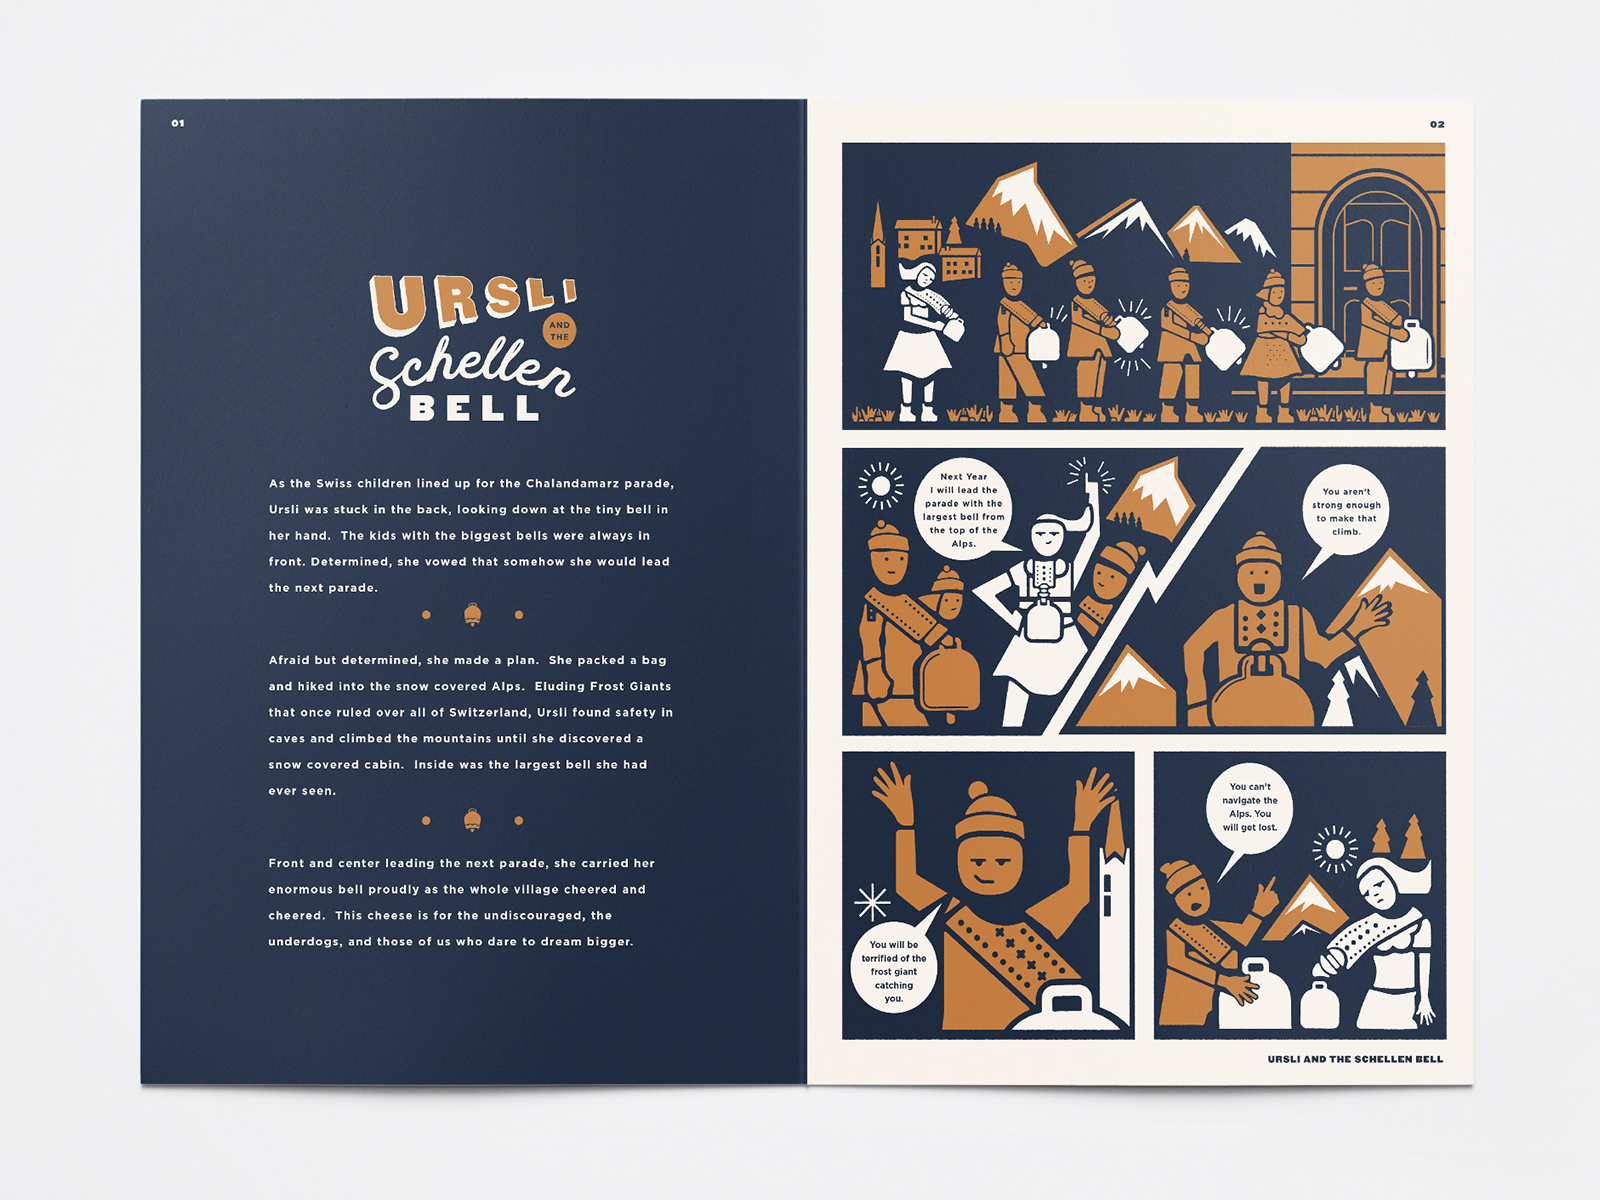 comic-book-dribbble-behance-new-york-schellen-bell-story-illustration-illustrator-zeki-michael-adobe-vector-panel-shot-designer-branding-packaging-book-editorial